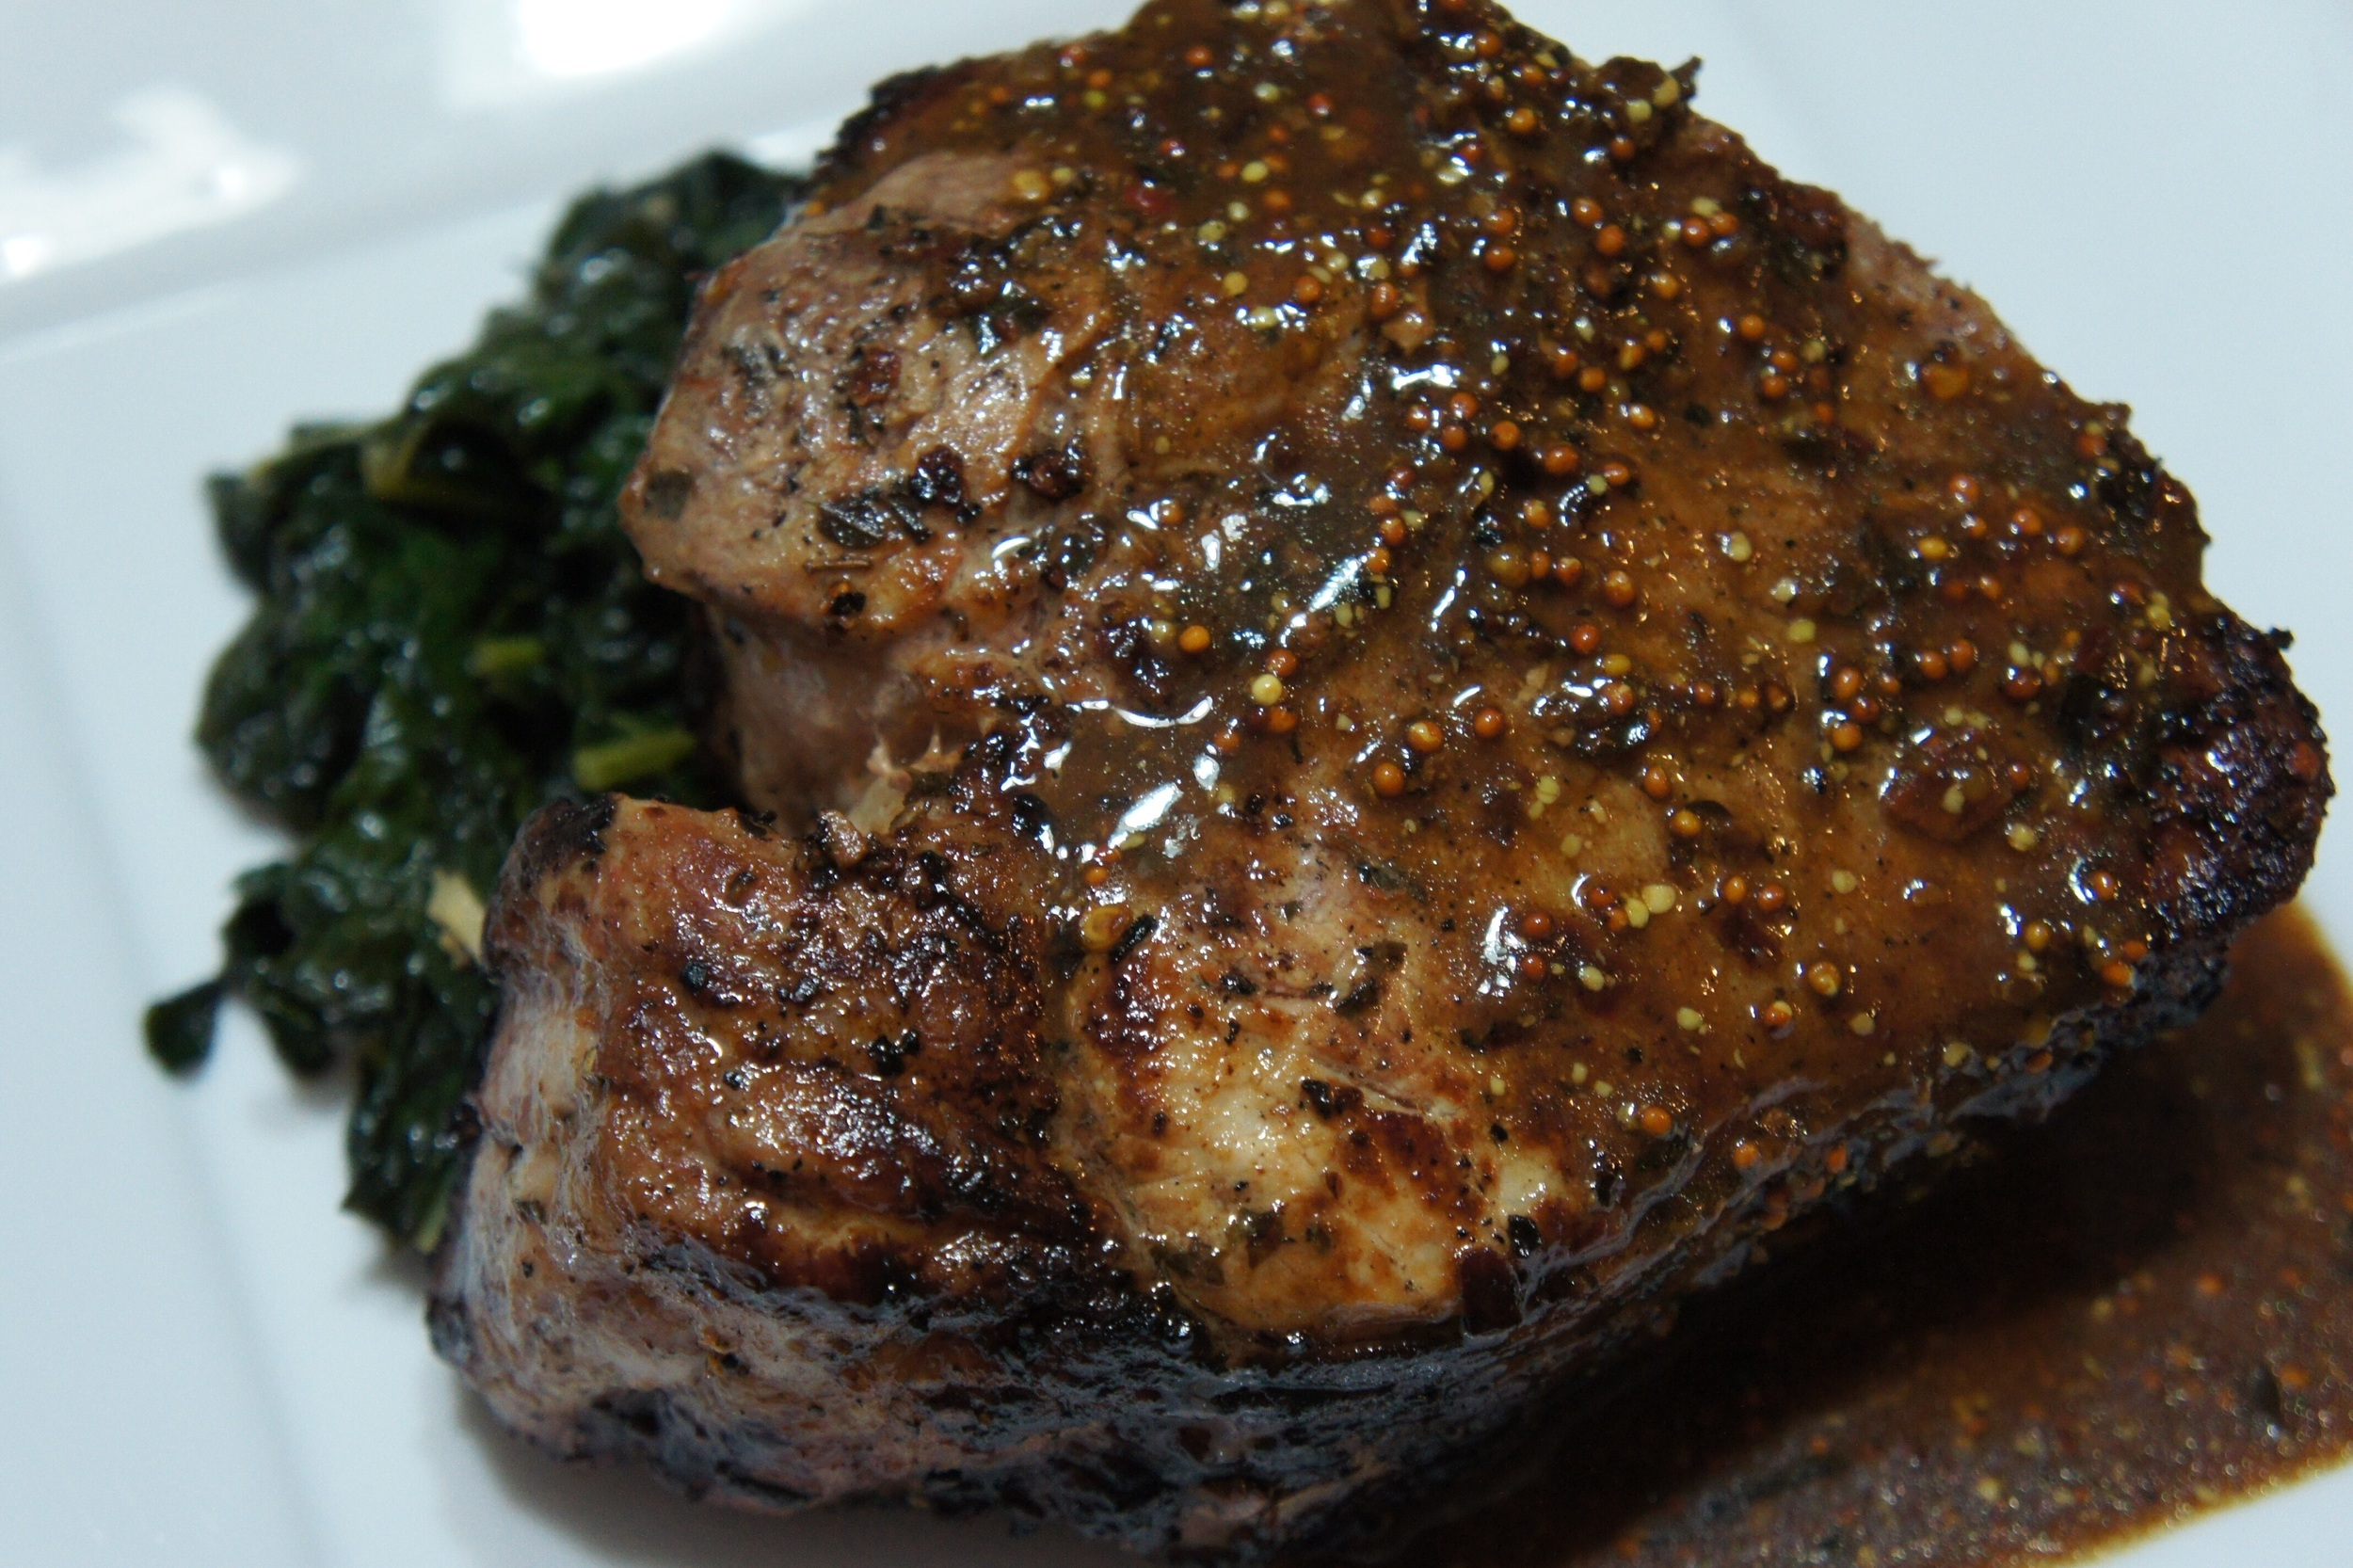 Lemon, thyme and garlic marinated chop, with Fat Tire Ale mustard sauce over sautéed kale.